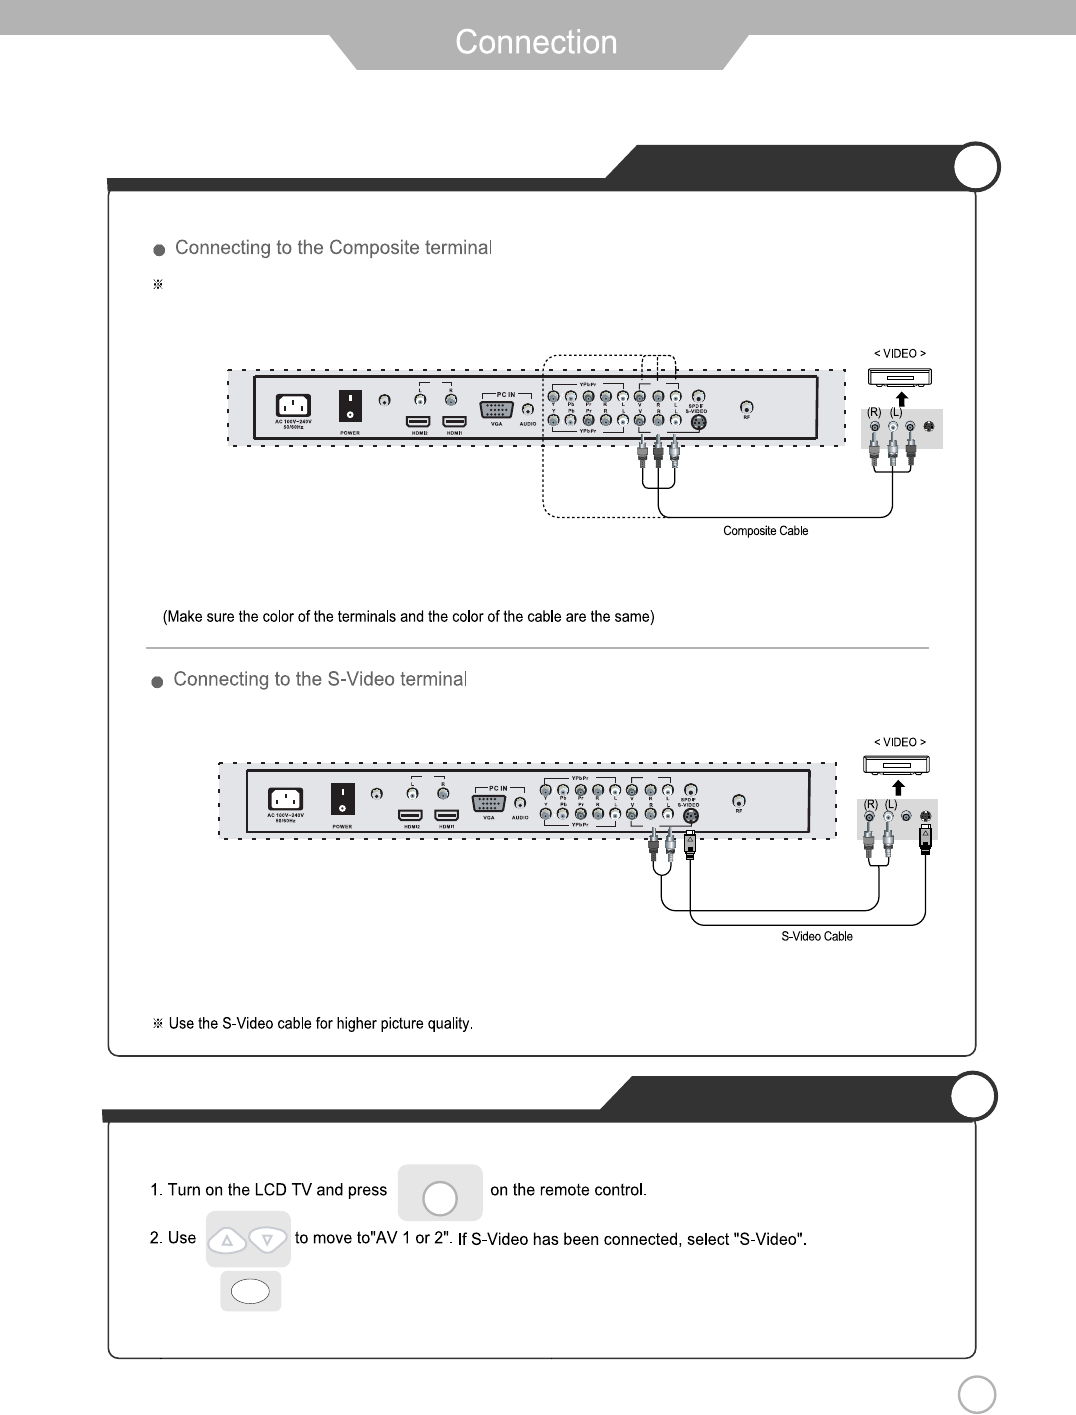 f026 user manual best setting instruction guide u2022 rh merchanthelps us Instruction Manual Example Manuals in PDF